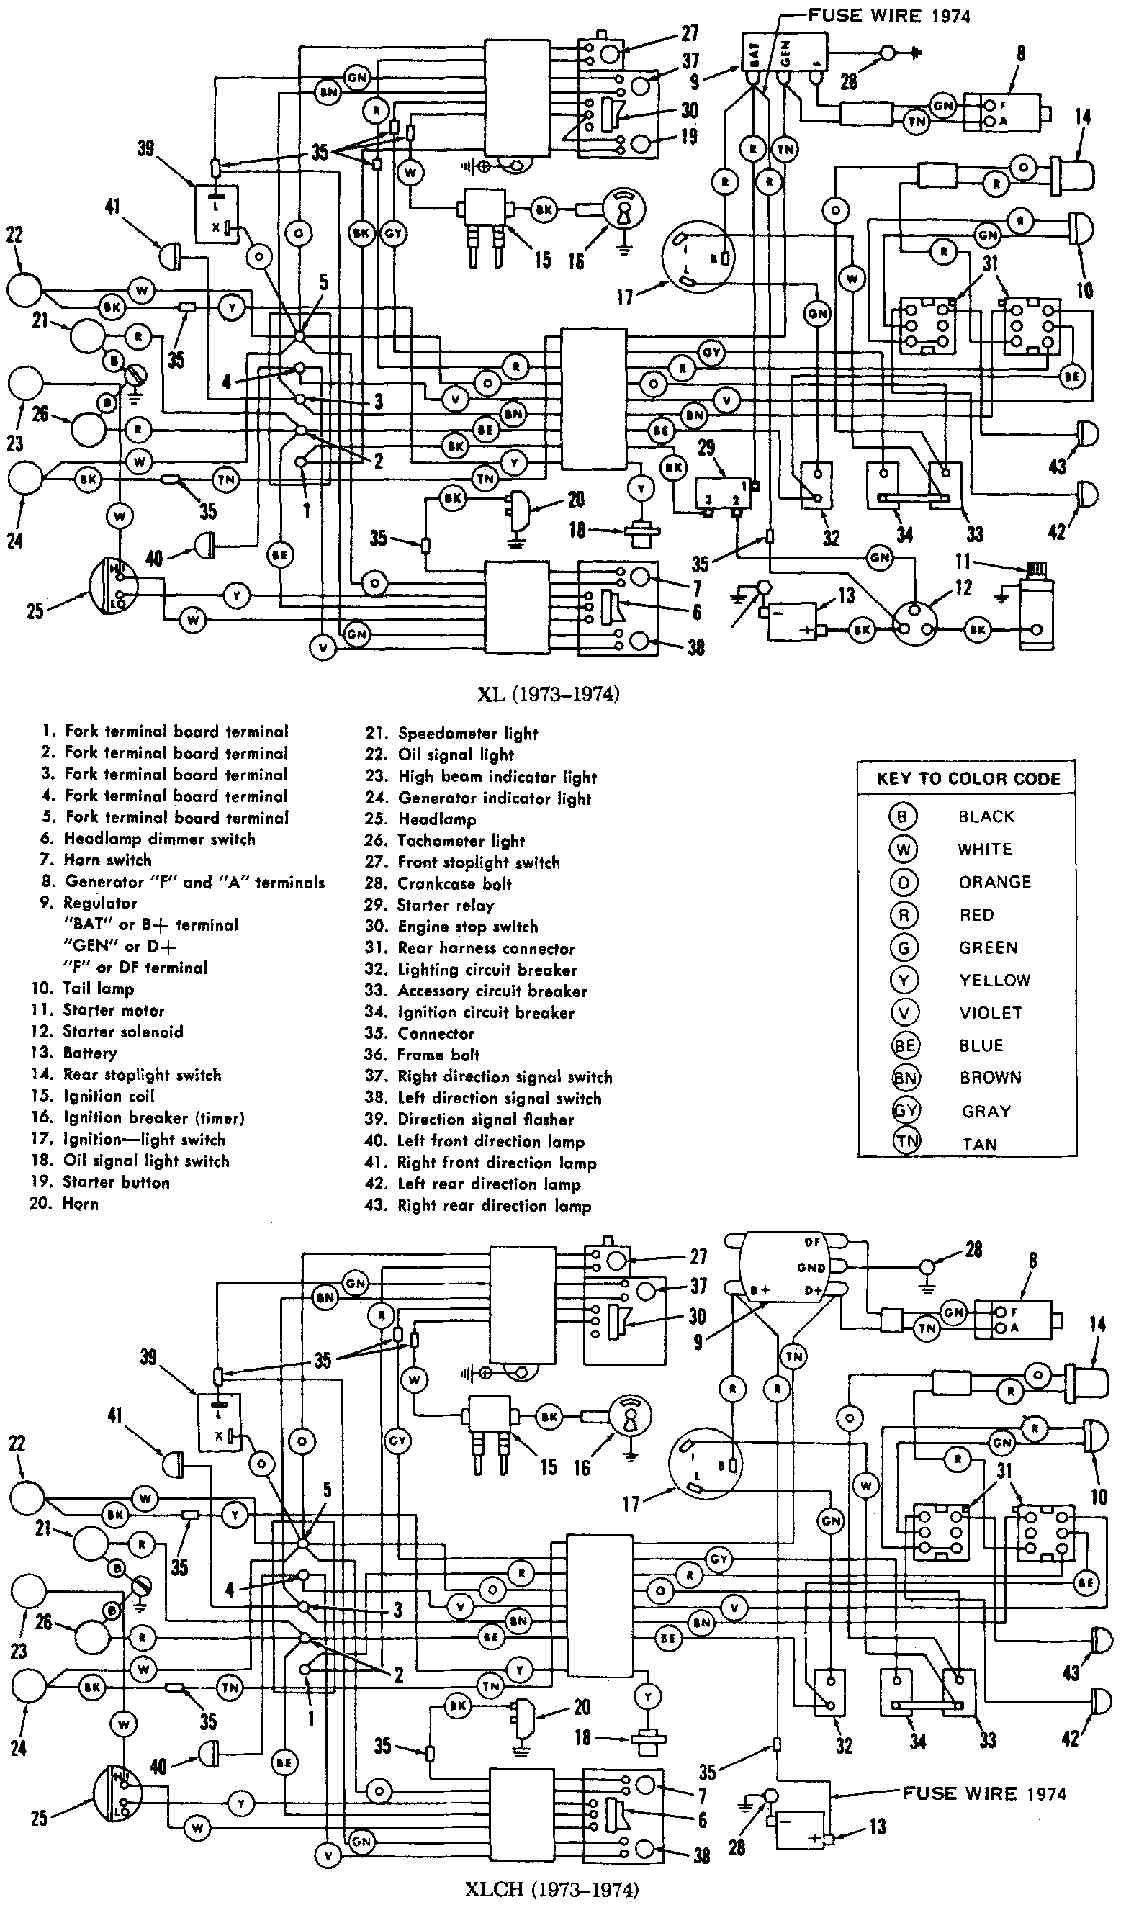 [DIAGRAM_5NL]  HARLEY DAVIDSON - Motorcycles Manual PDF, Wiring Diagram & Fault Codes | 1992 Harley Davidson Ultra Glide Wiring Diagram |  | Motorcycle Manuals News